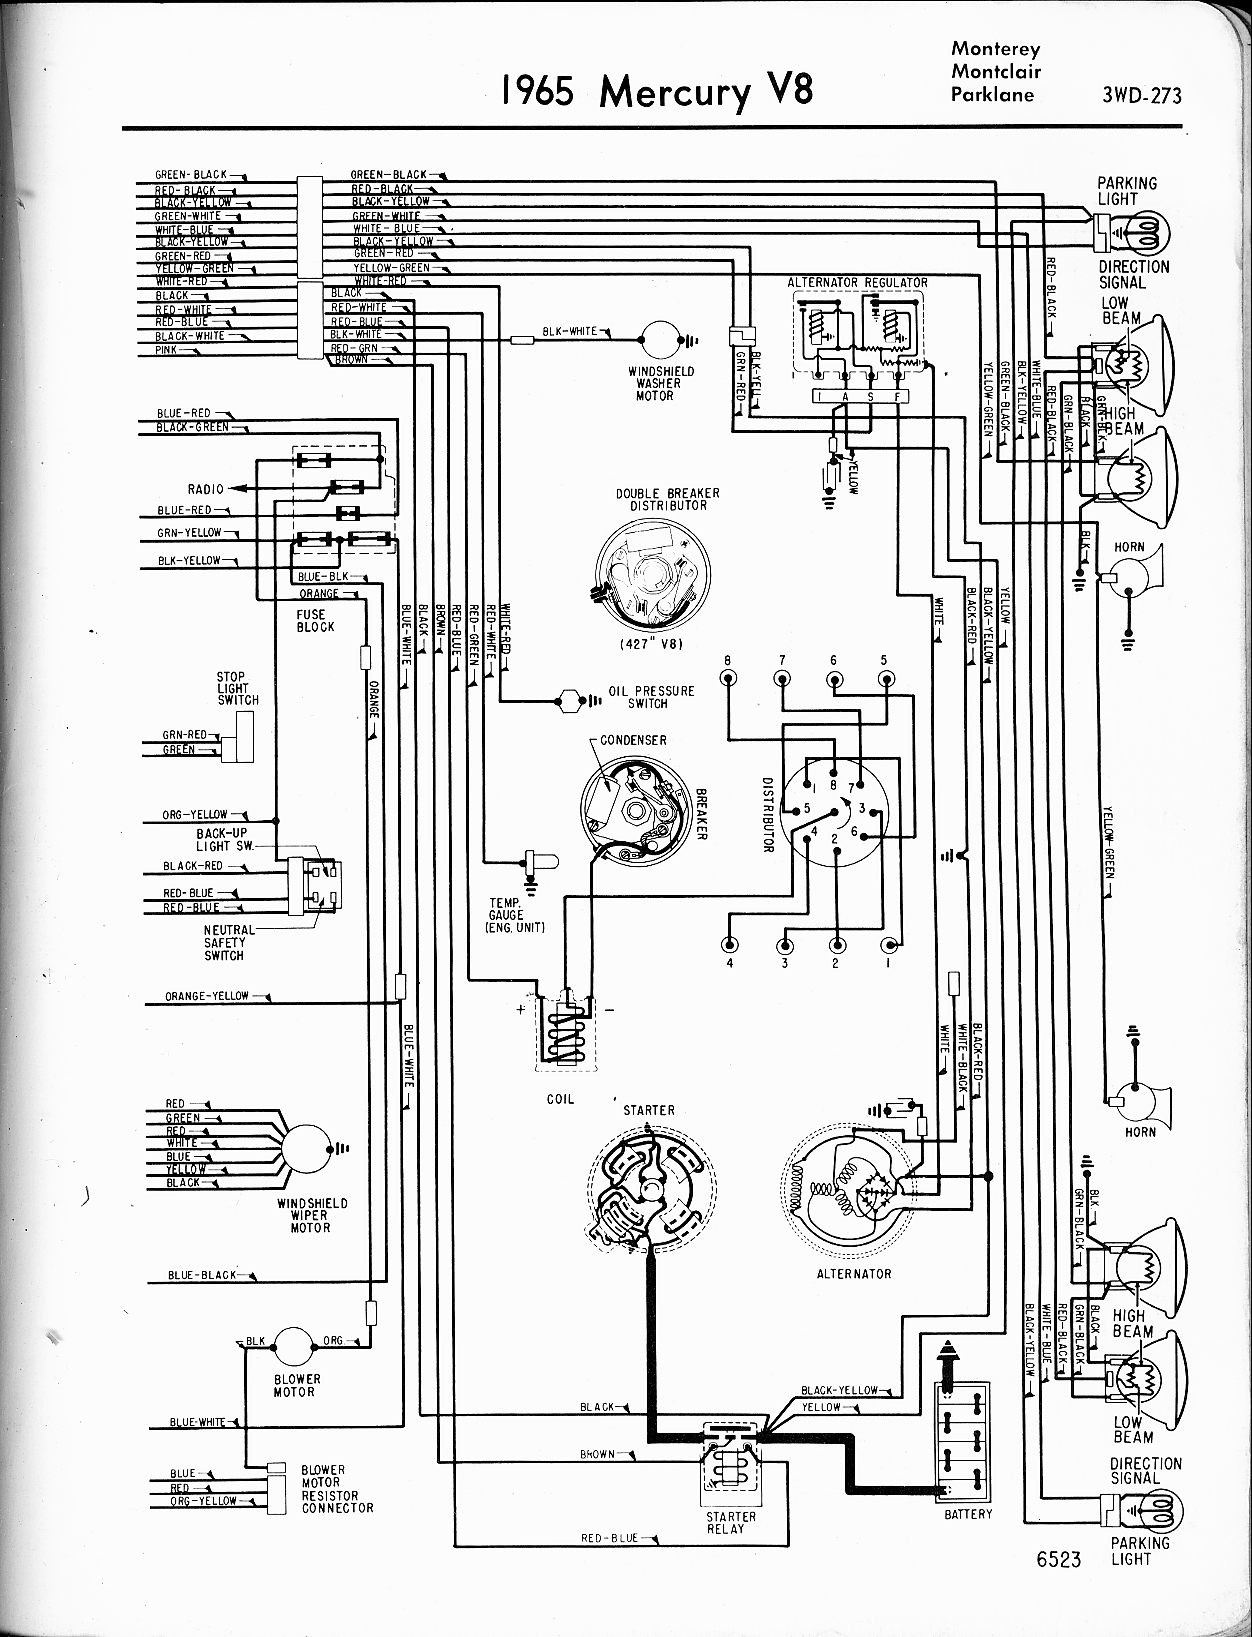 68 Cougar Headlights Wiring Diagram Trusted 67 Xr 7 Wire Well Detailed Diagrams U2022 Sensor 2001 Mercury